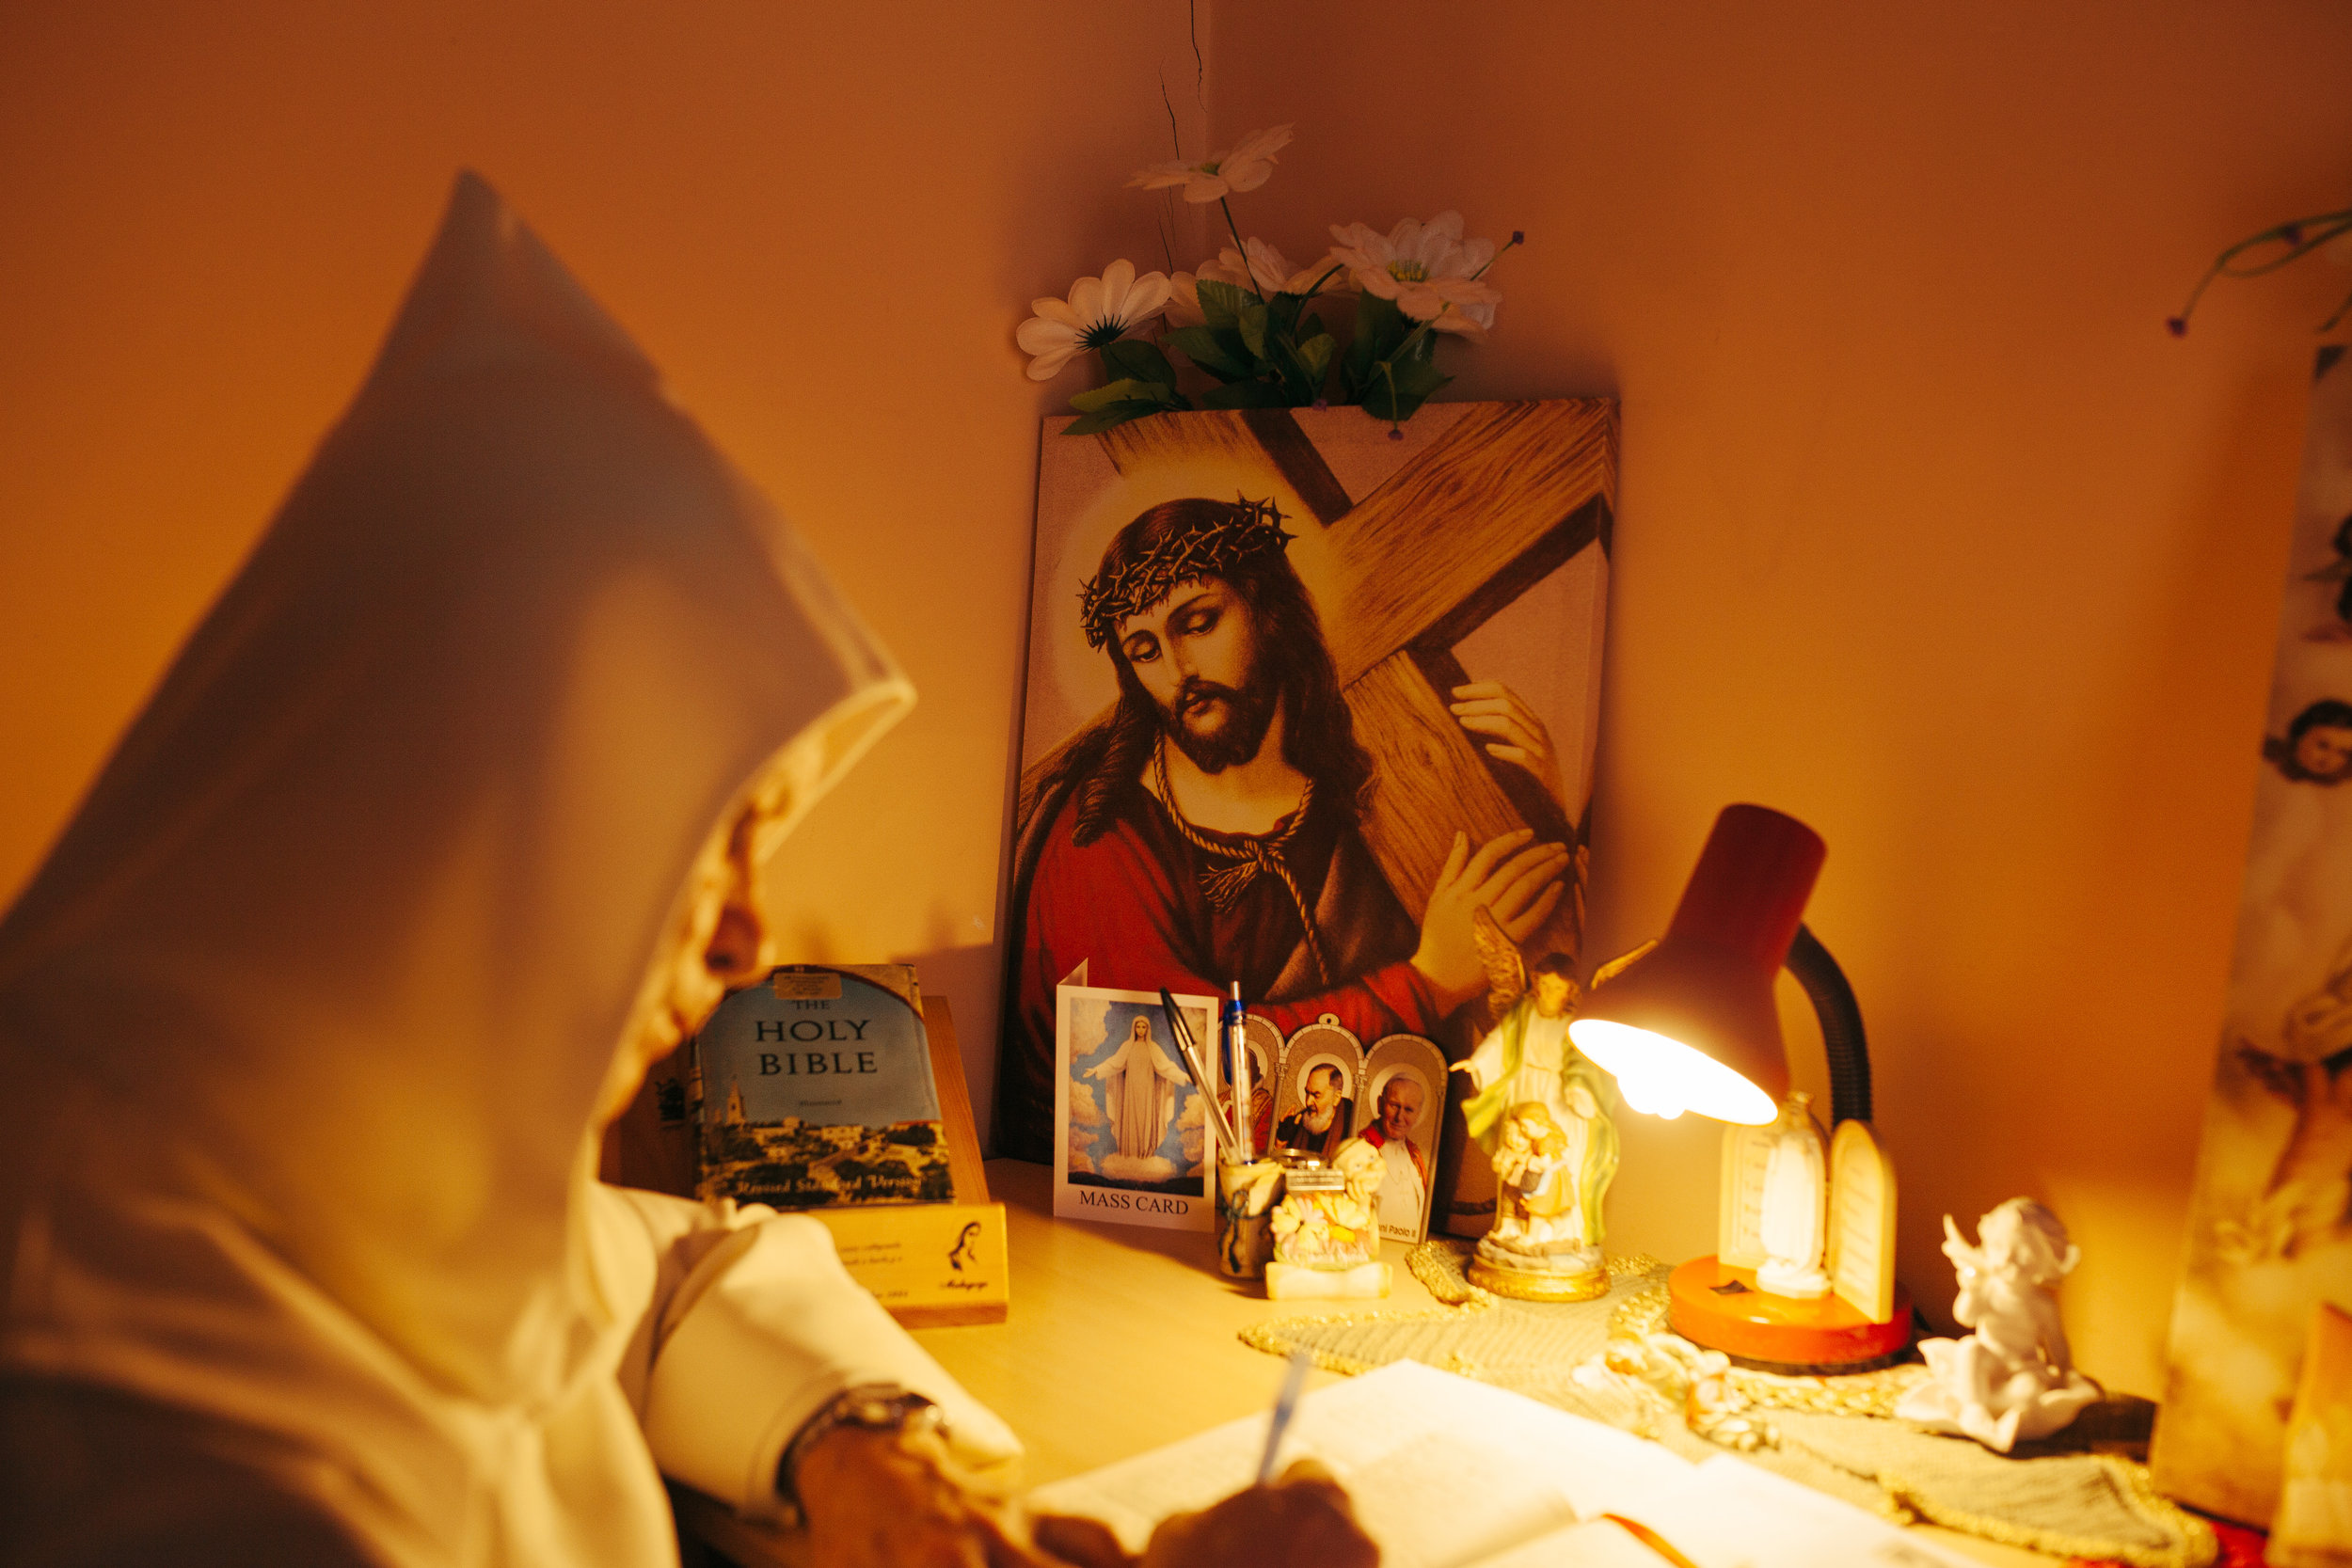 Holy Inspiration - Icons of Jesus inspire Fr.David Jones in his writing.